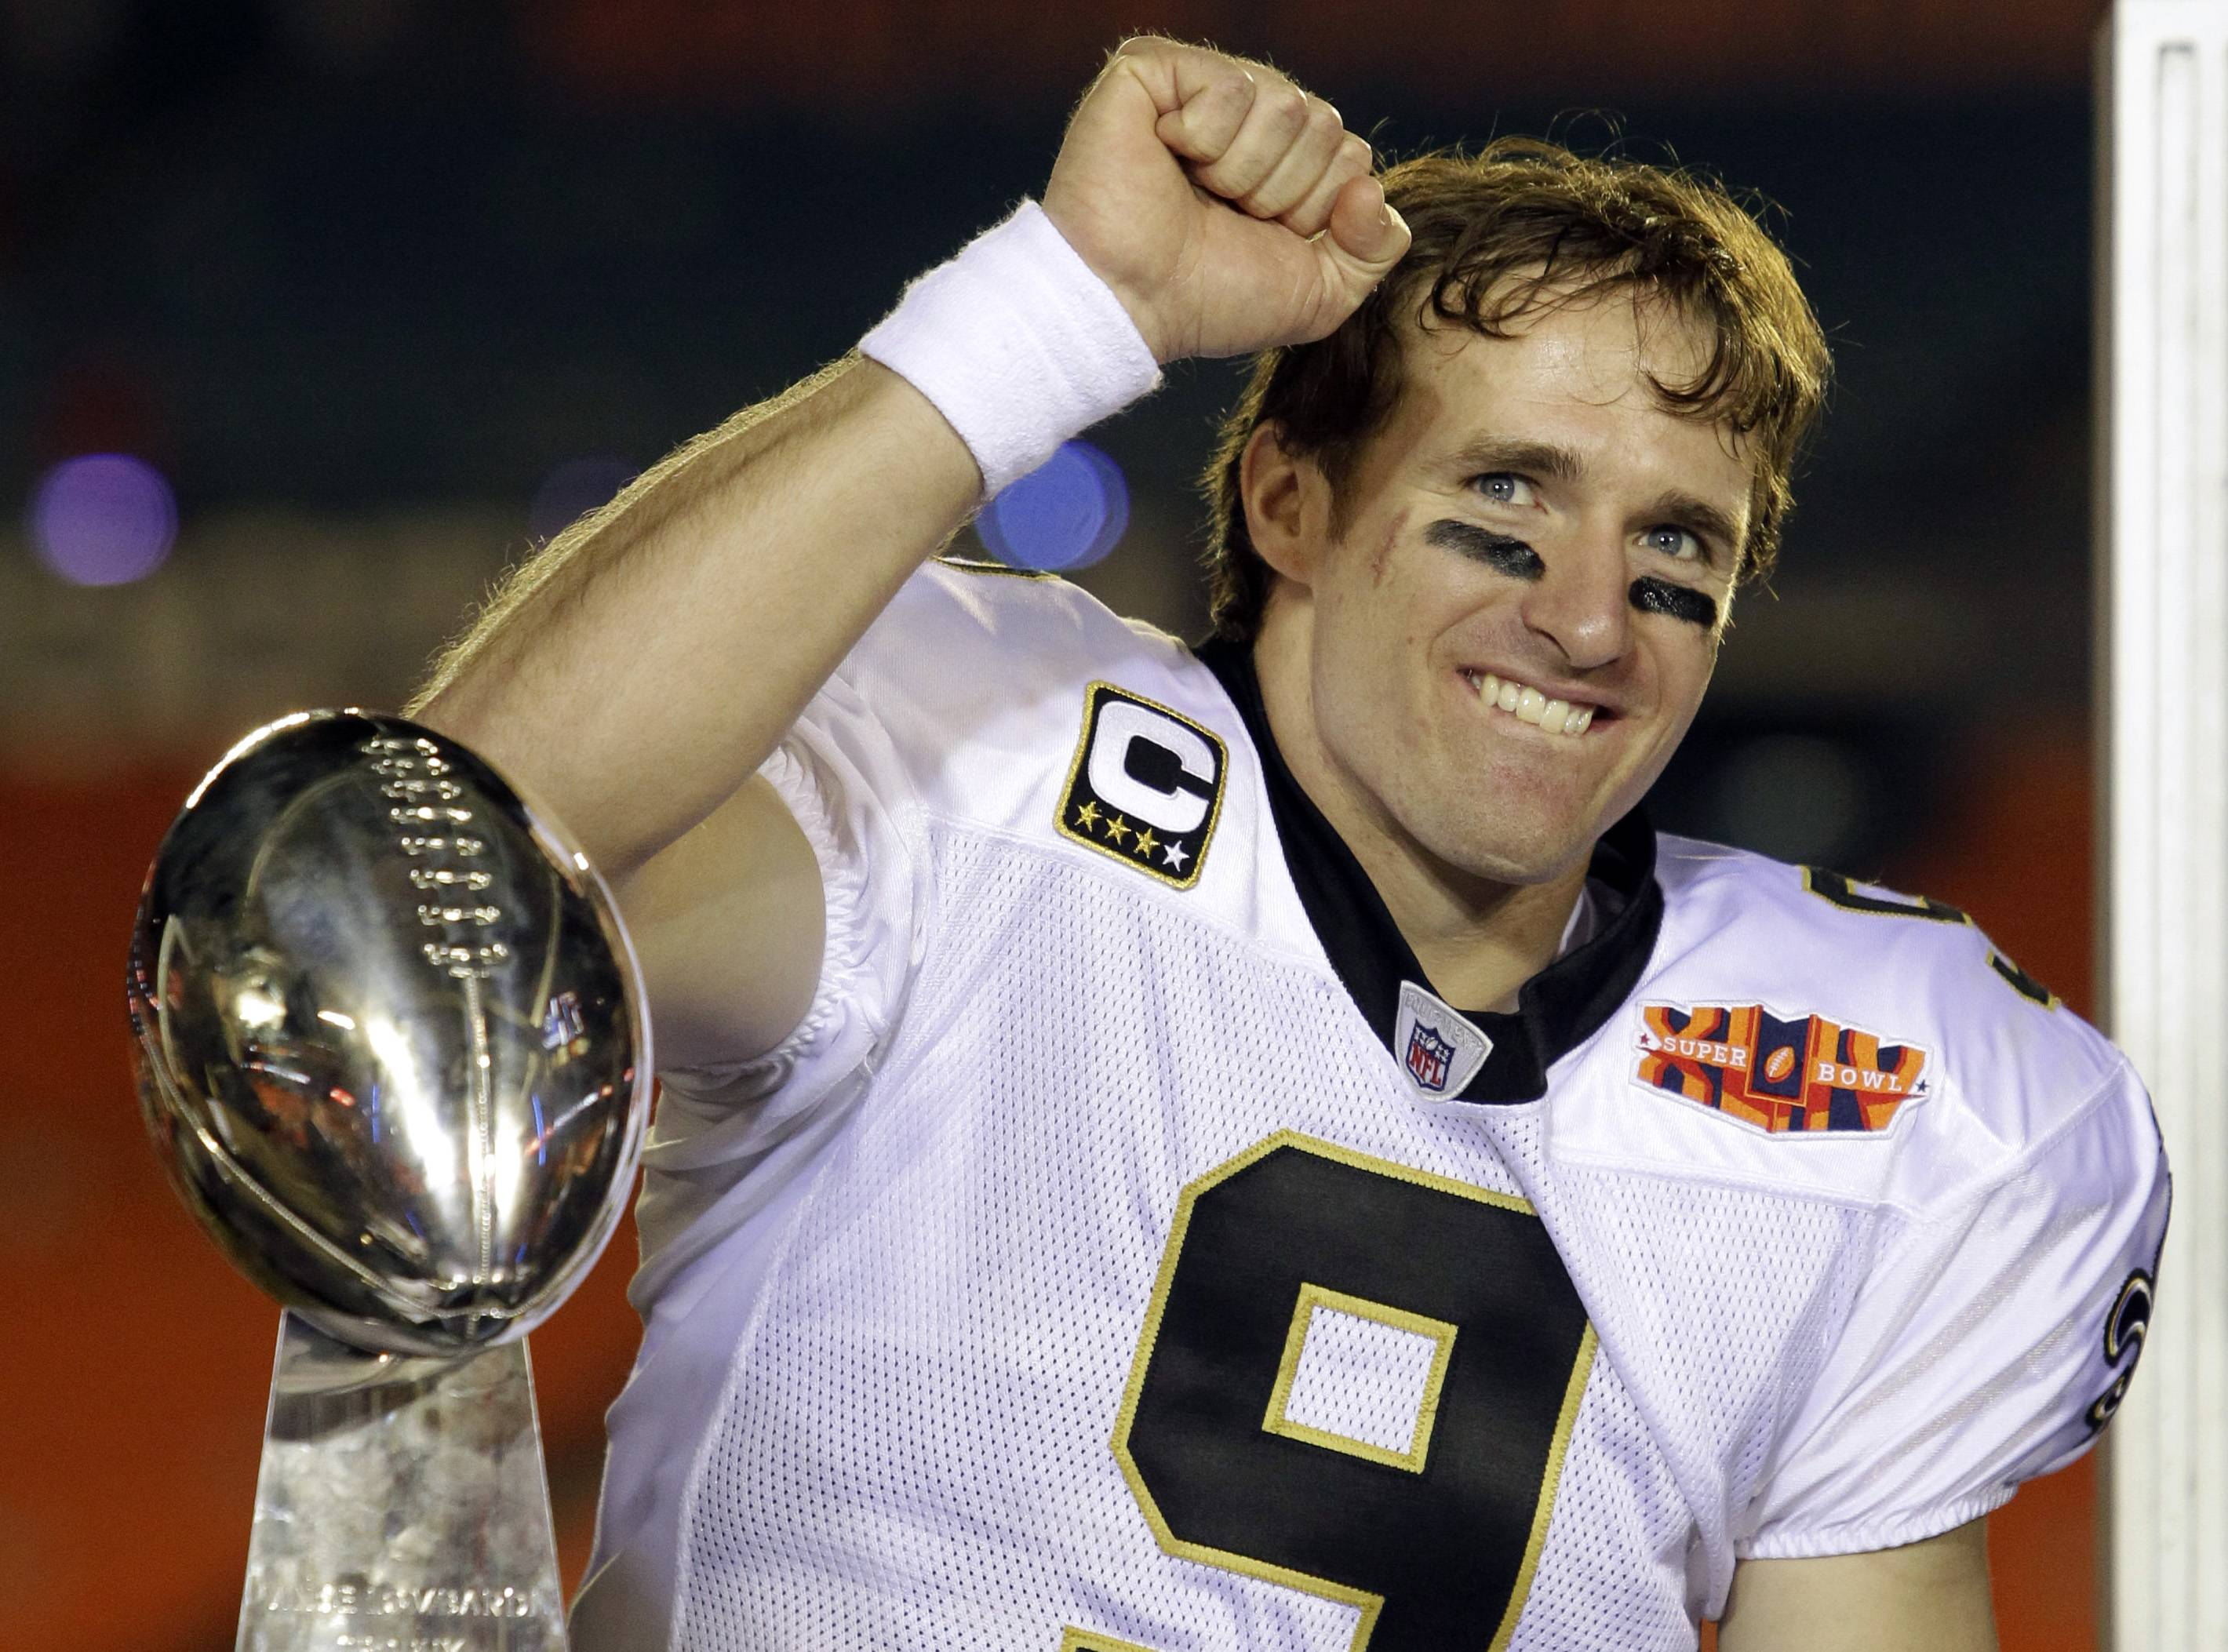 An arbitrator in Philadelphia has ruled in Drew Brees' favor in a dispute over how much the Saints would have to pay him if they applied the franchise tag to the star quarterback again in 2013. The ruling adds leverage to Brees, who has so far skipped the Saints' offseason practices while holding out for a new long-term contract with New Orleans.